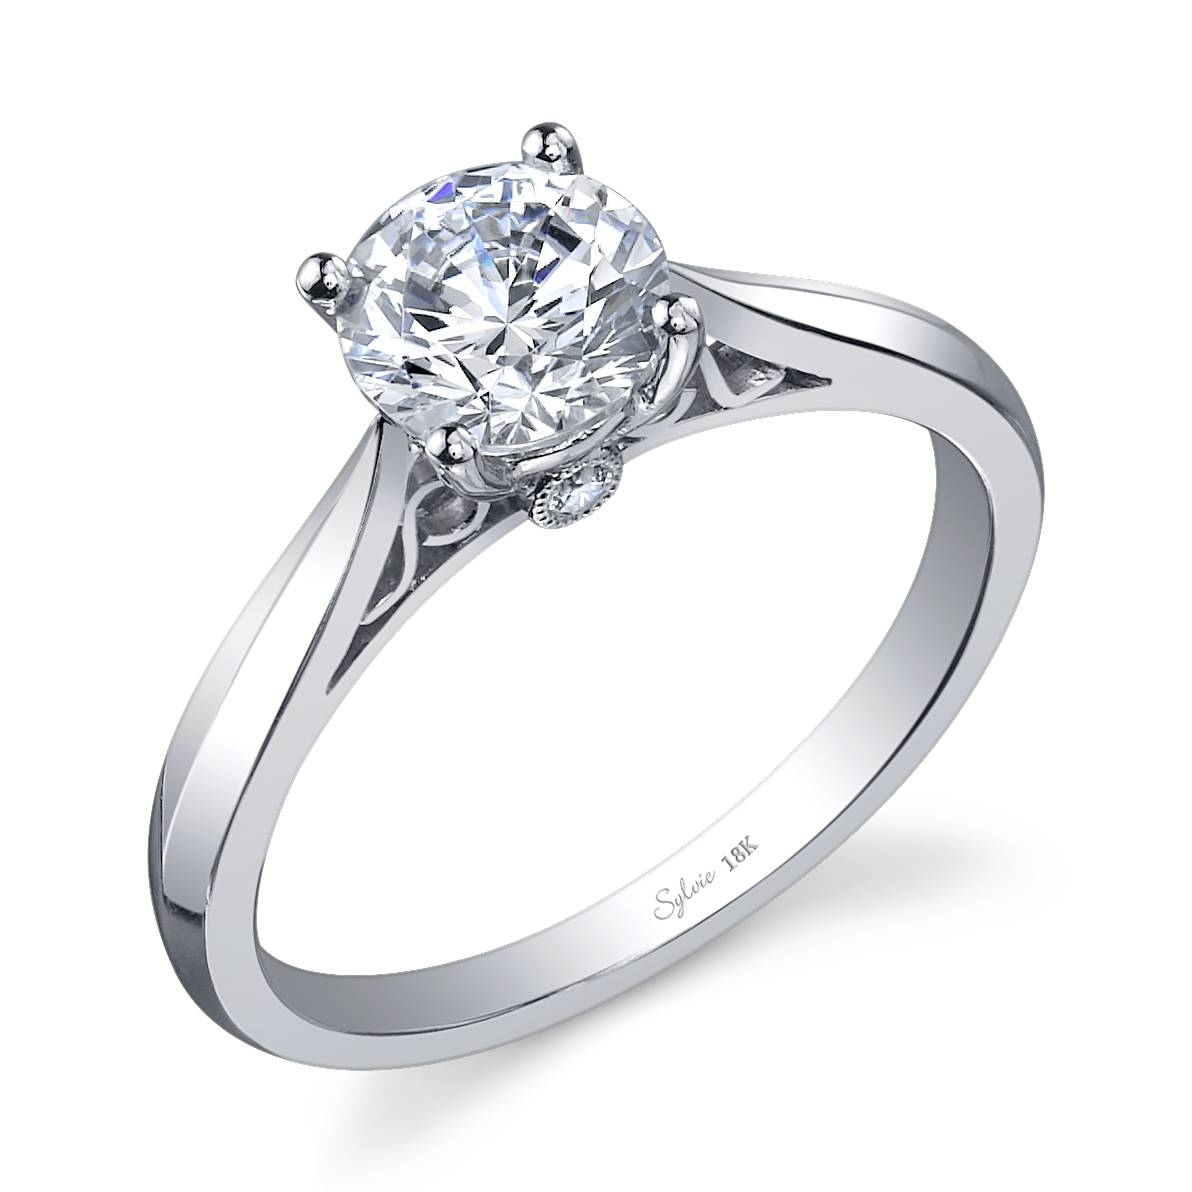 Solitaire With Accent Stones Engagement Ring: Sylvie Regarding Wedding Rings Settings Without Center Stone (View 9 of 15)